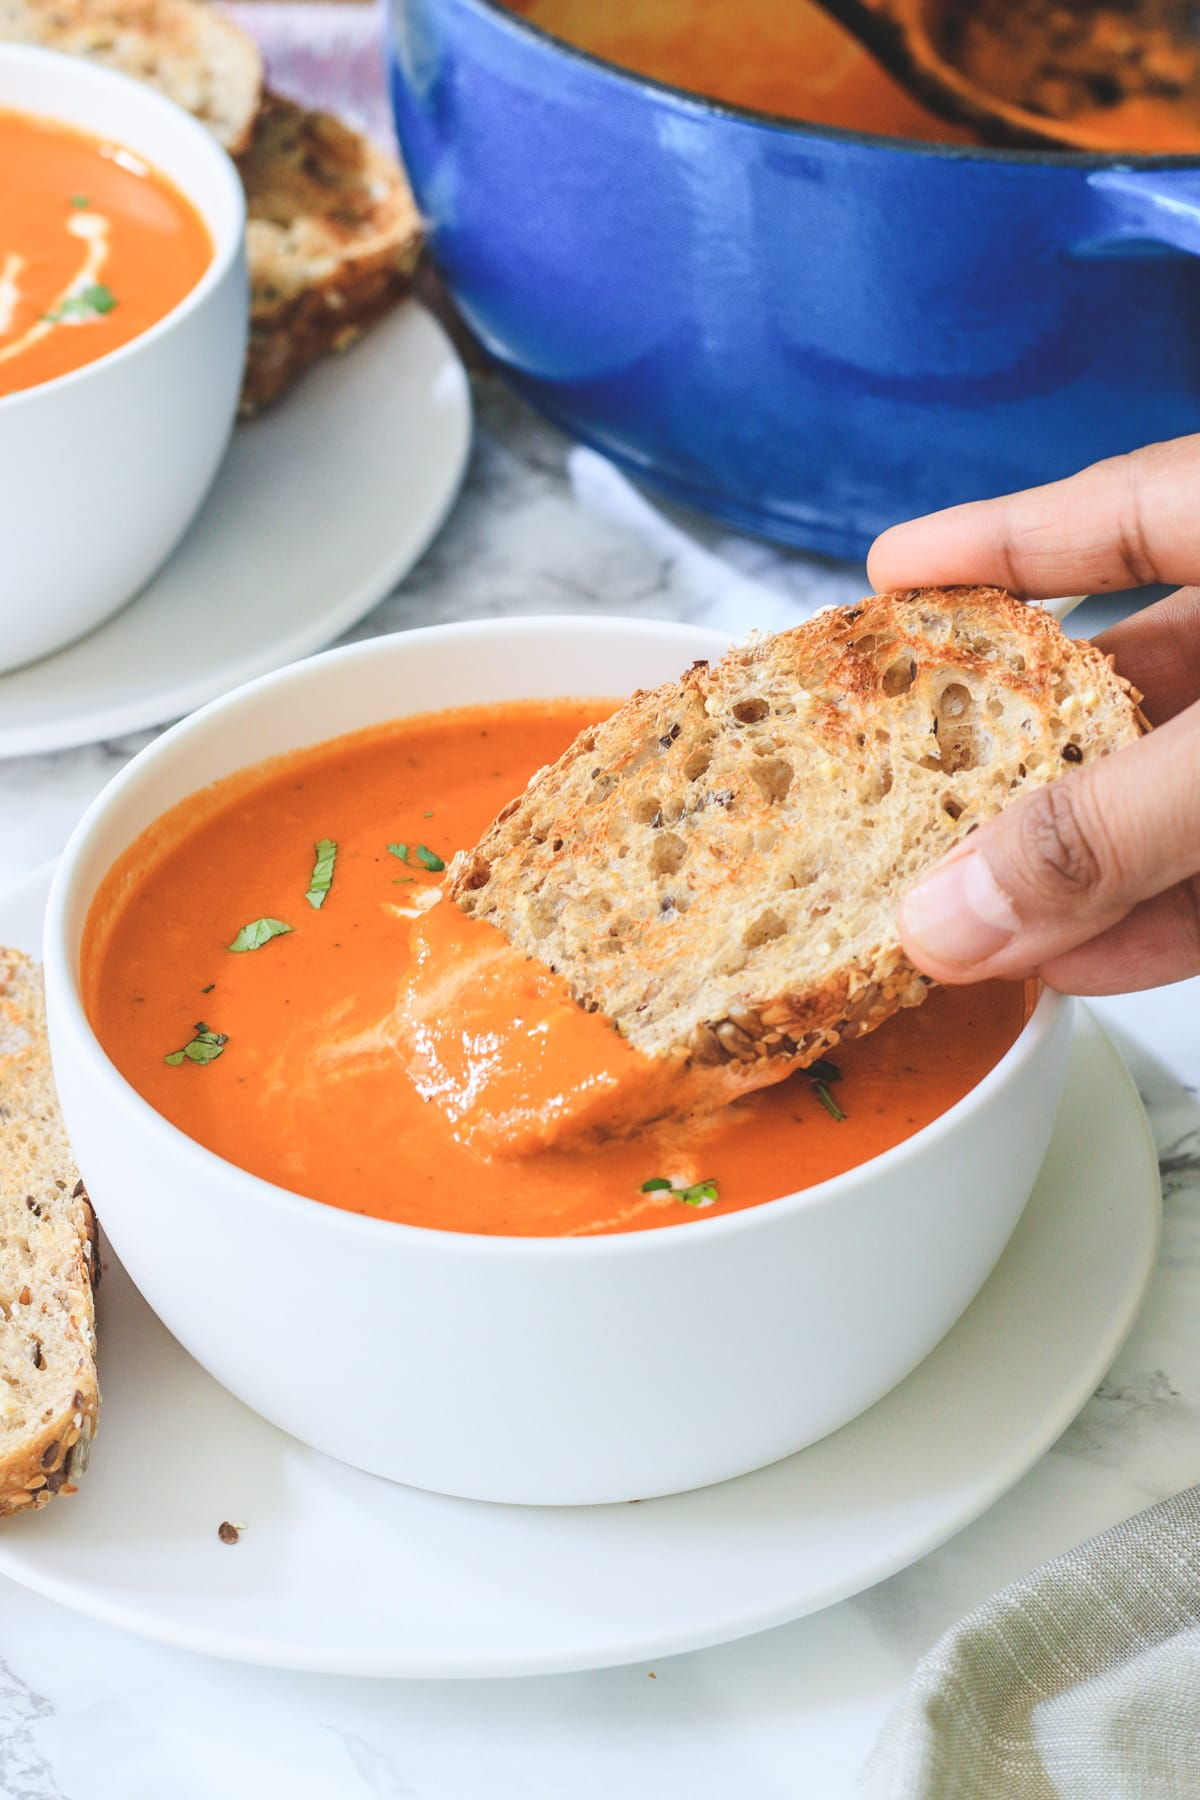 A bread dunked into the roasted red pepper soup ready to eat.